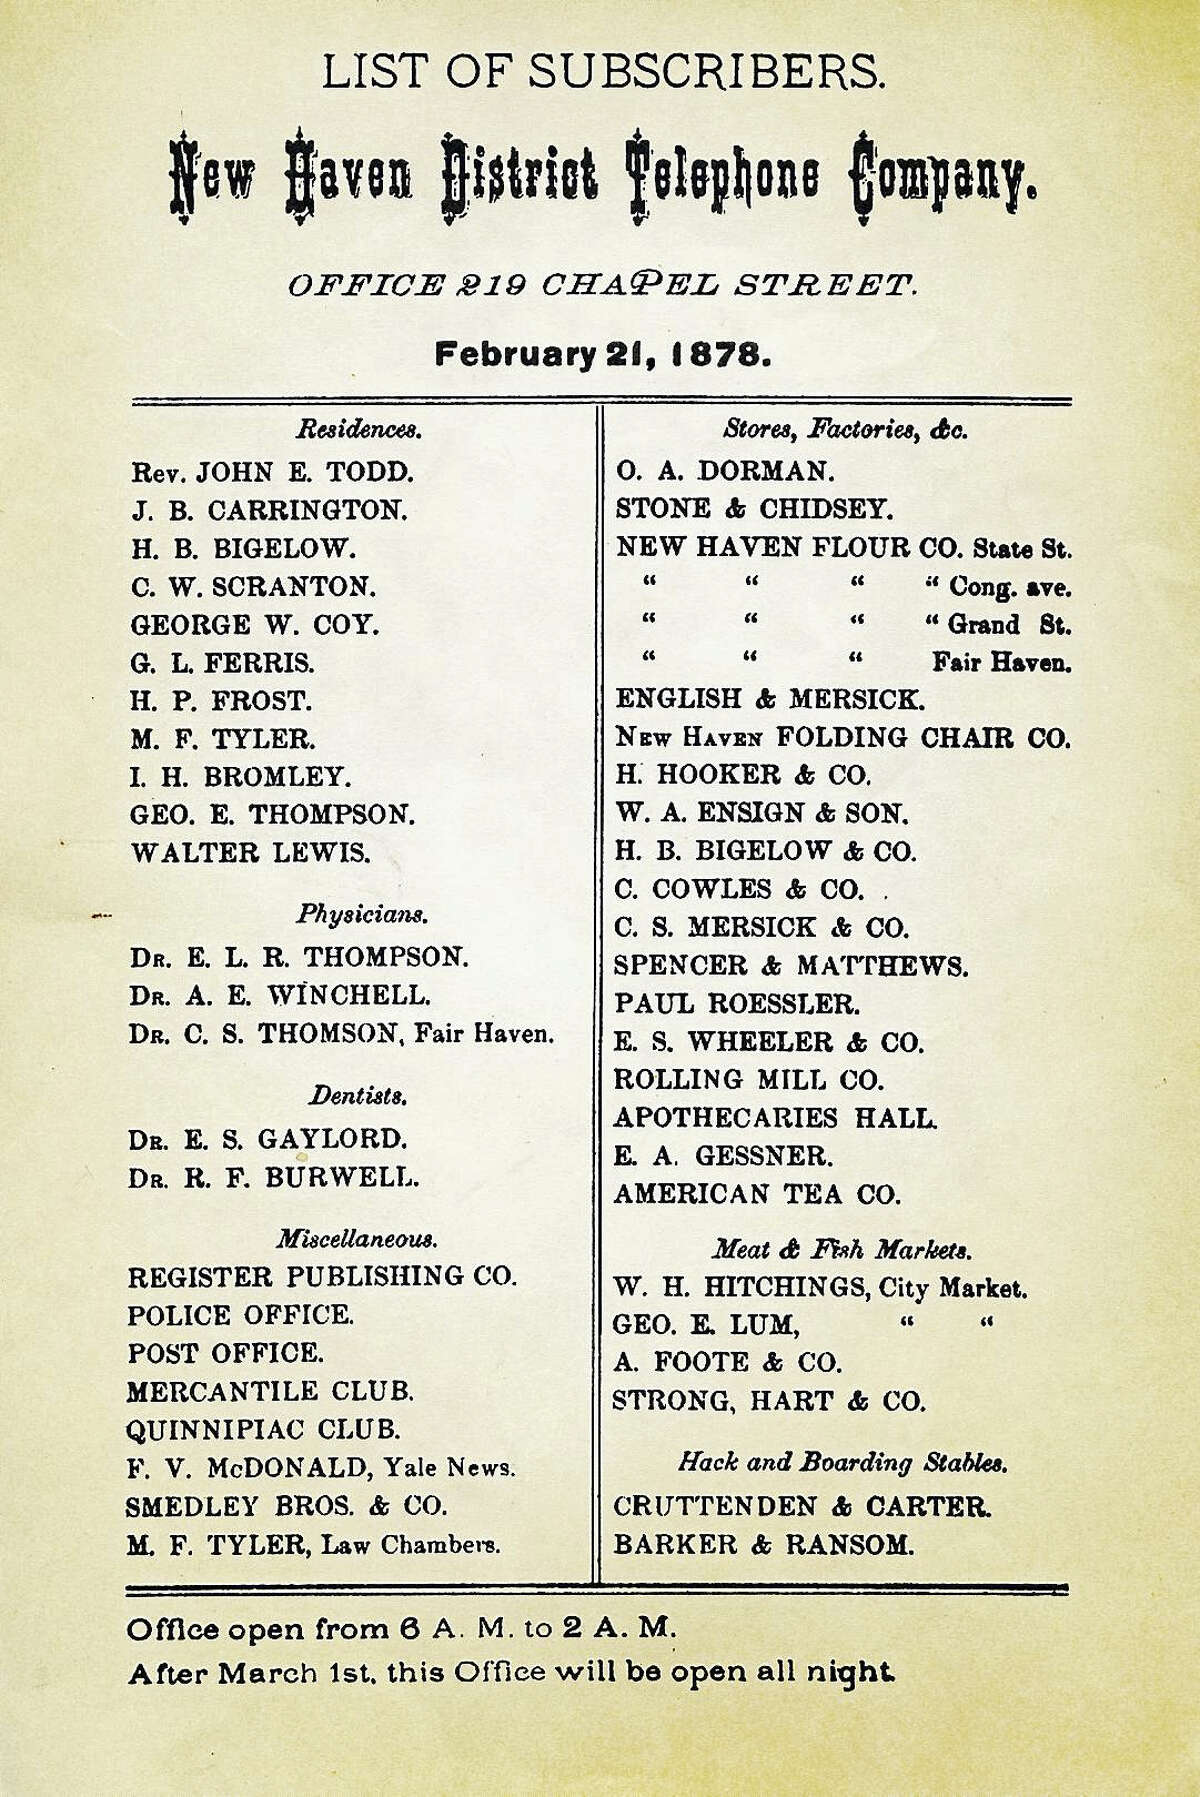 The first phone directory, from 1878.